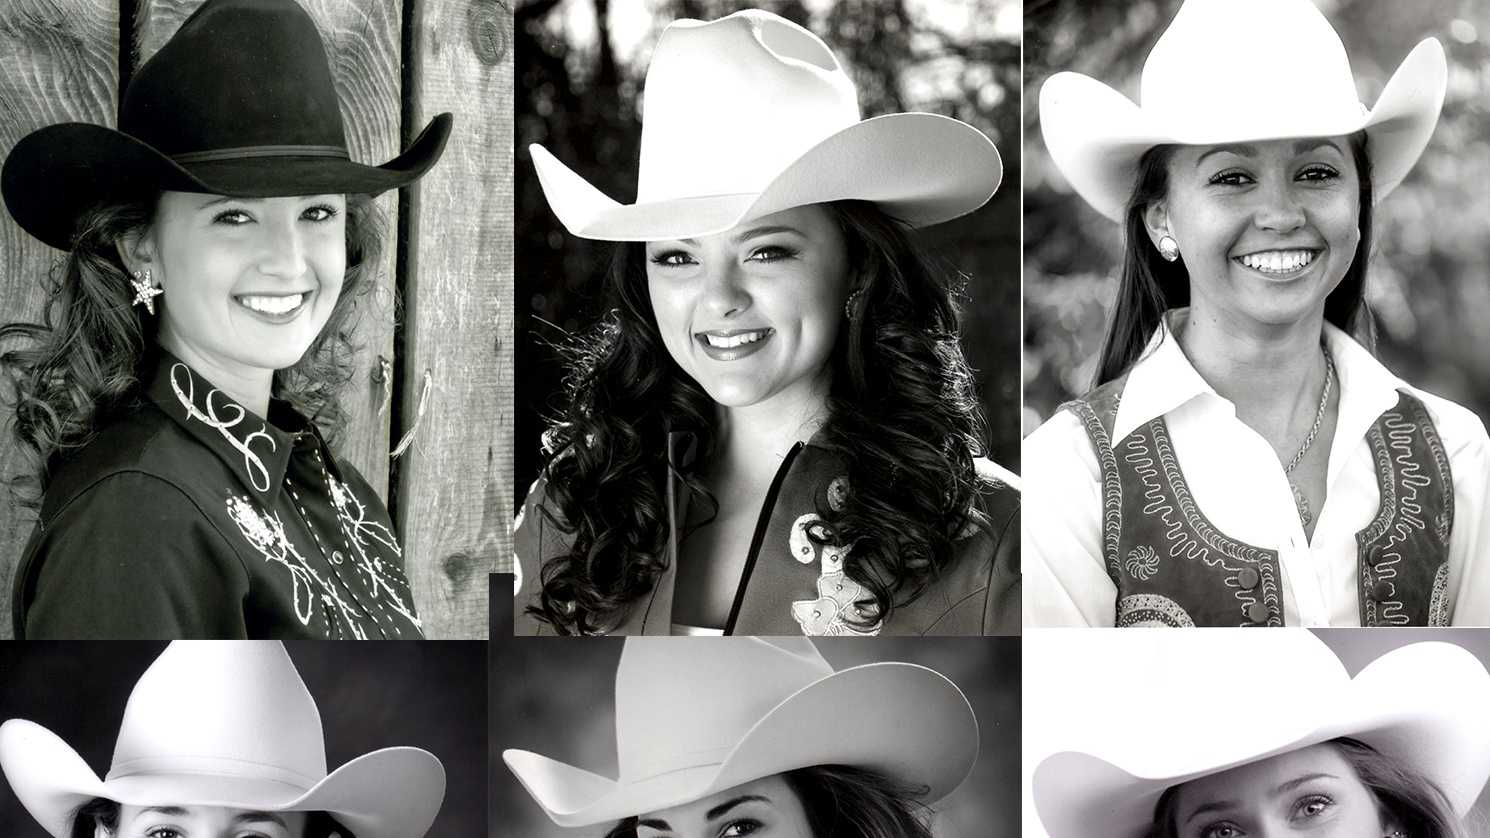 salinas rodeo miss 2013.jpg